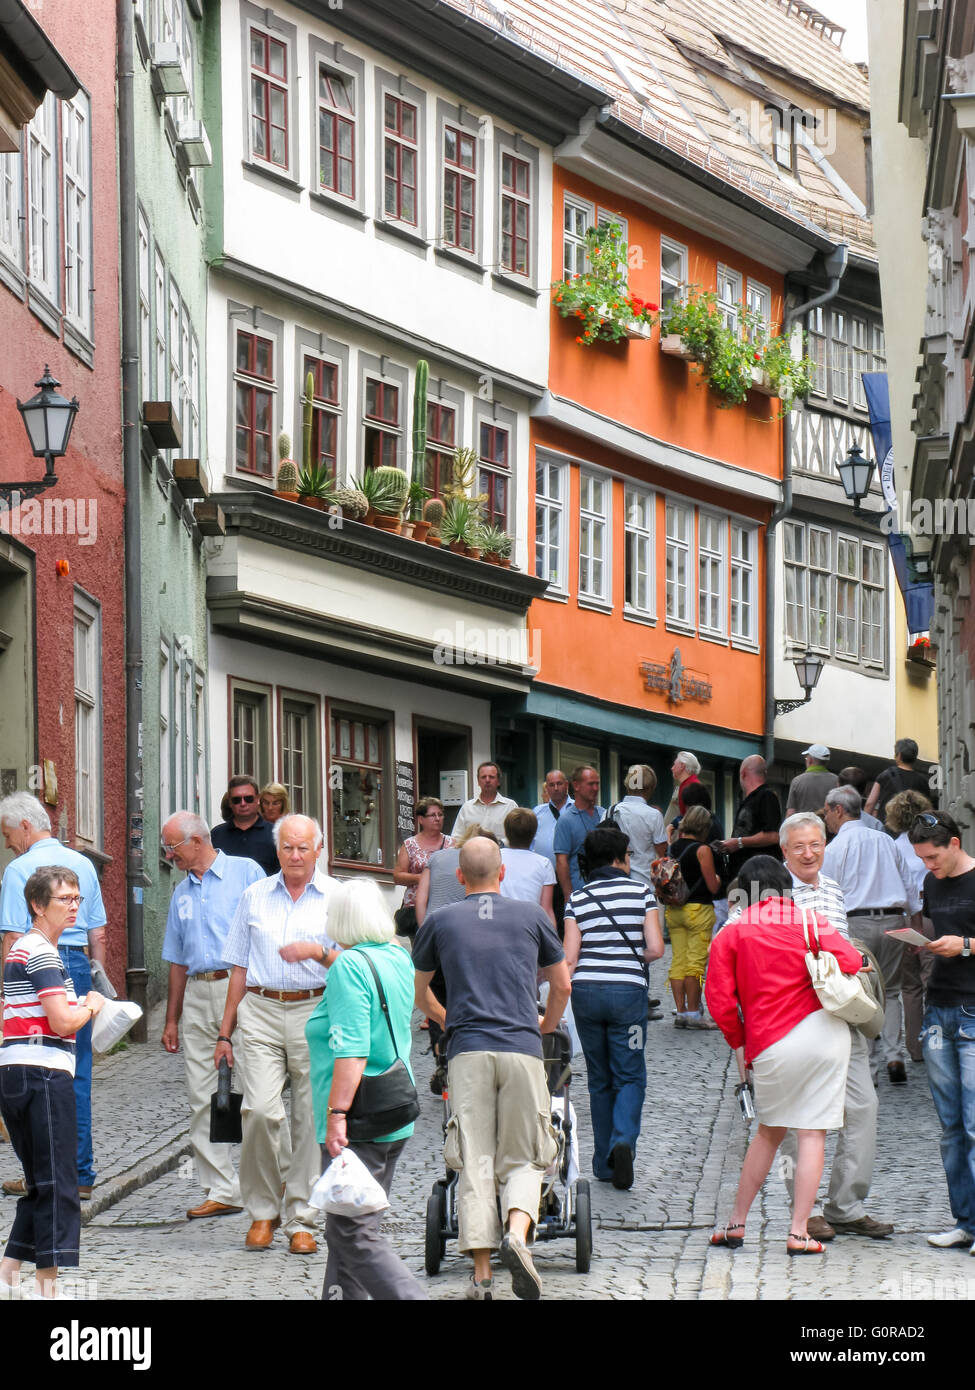 Tourists in shopping street  Kramerstrasse in the city centre of Erfurt, Thuringen, Germany - Stock Image